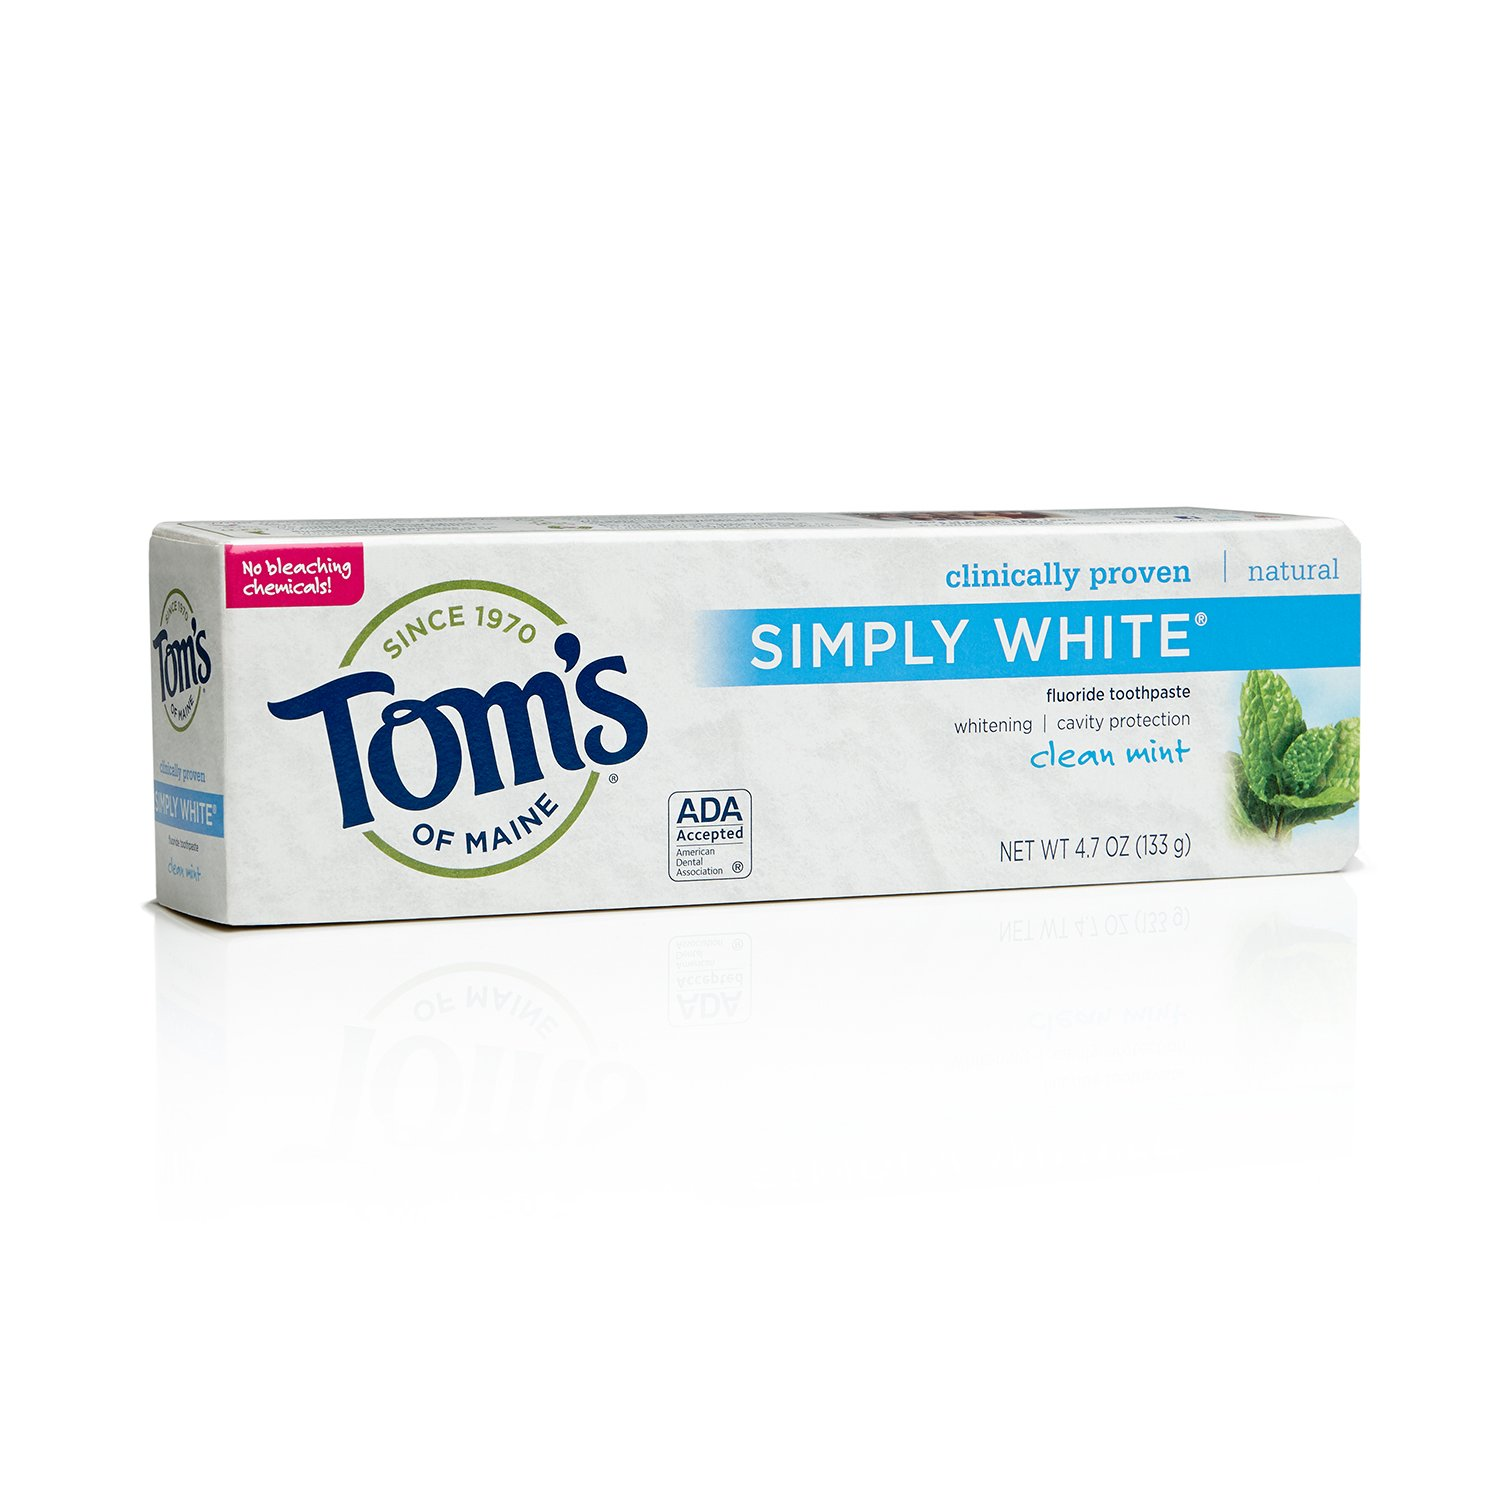 Tom's of Maine 683480 Simply White Natural Toothpaste, Clean Mint, 4.7 Ounce, 24 Count